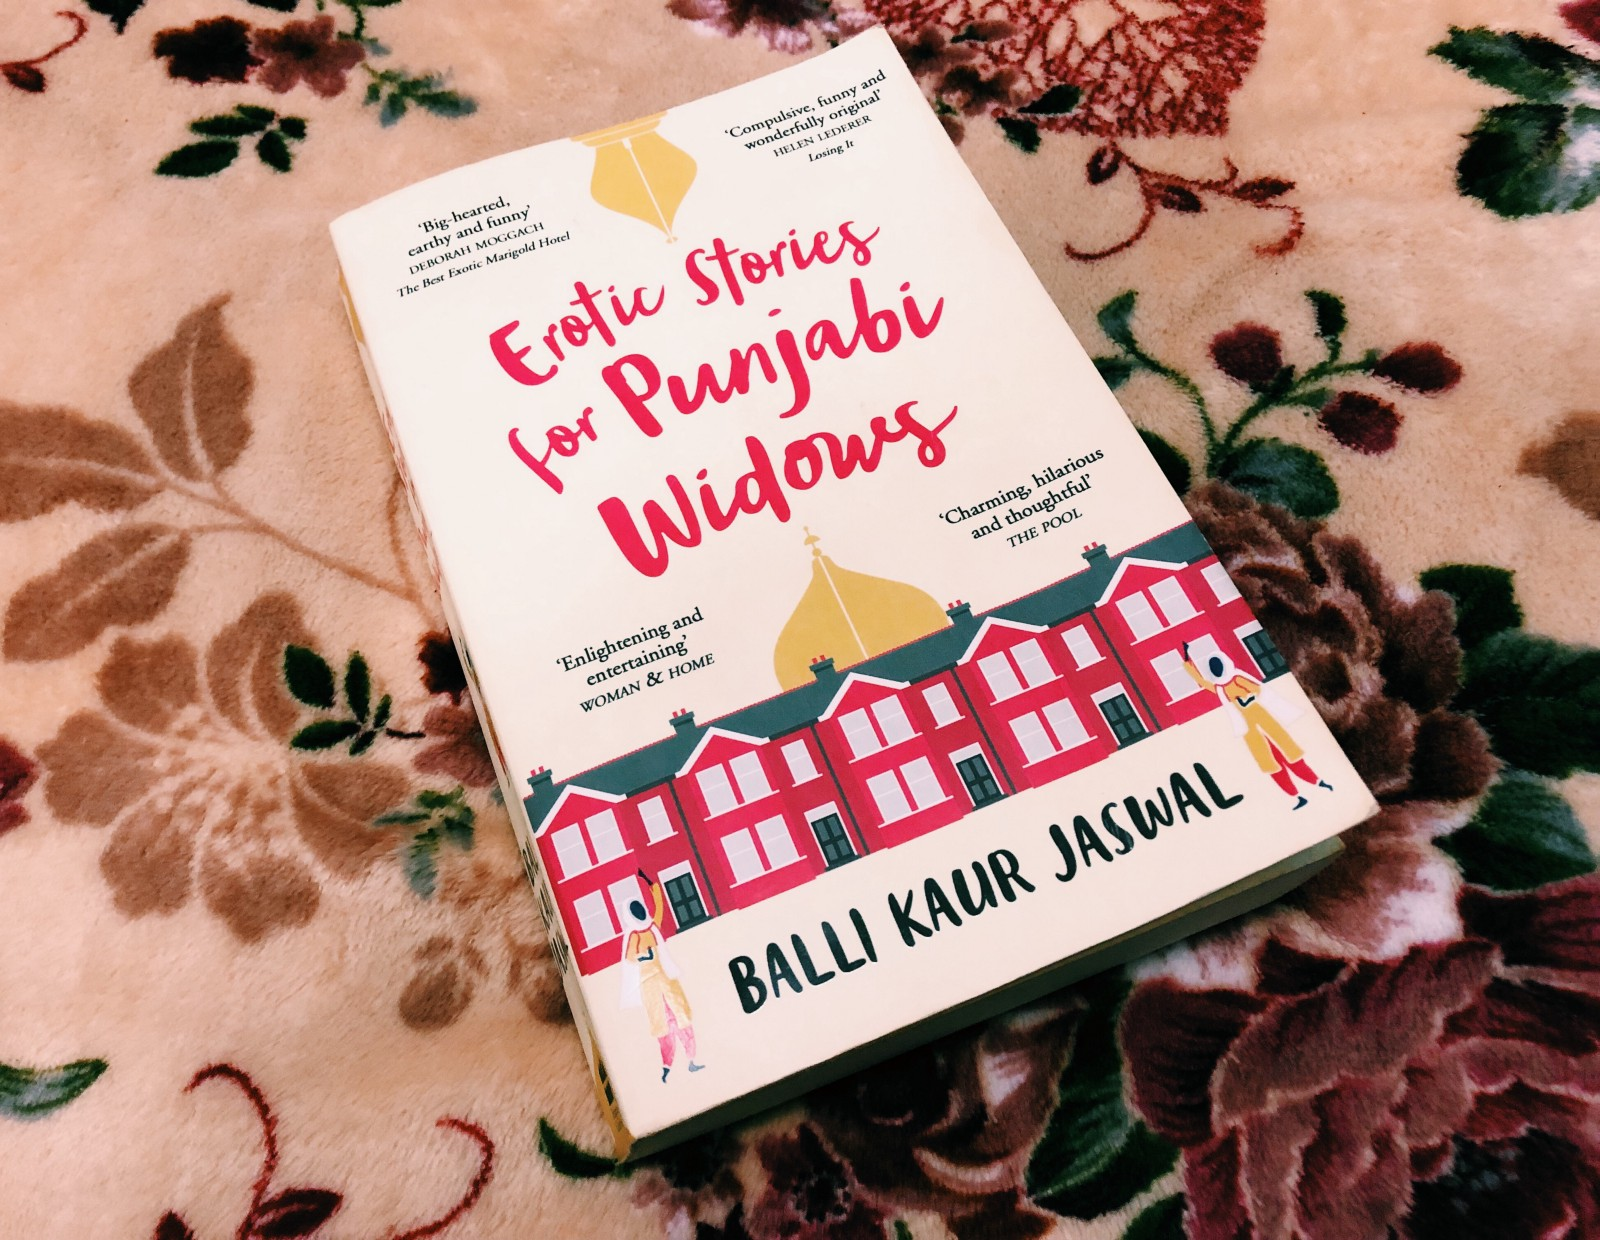 Erotic Stories for Punjabi Widows by Balli Kaur Jaswal. HarperCollins  Publishers, 2017. 388 pp, fiction.